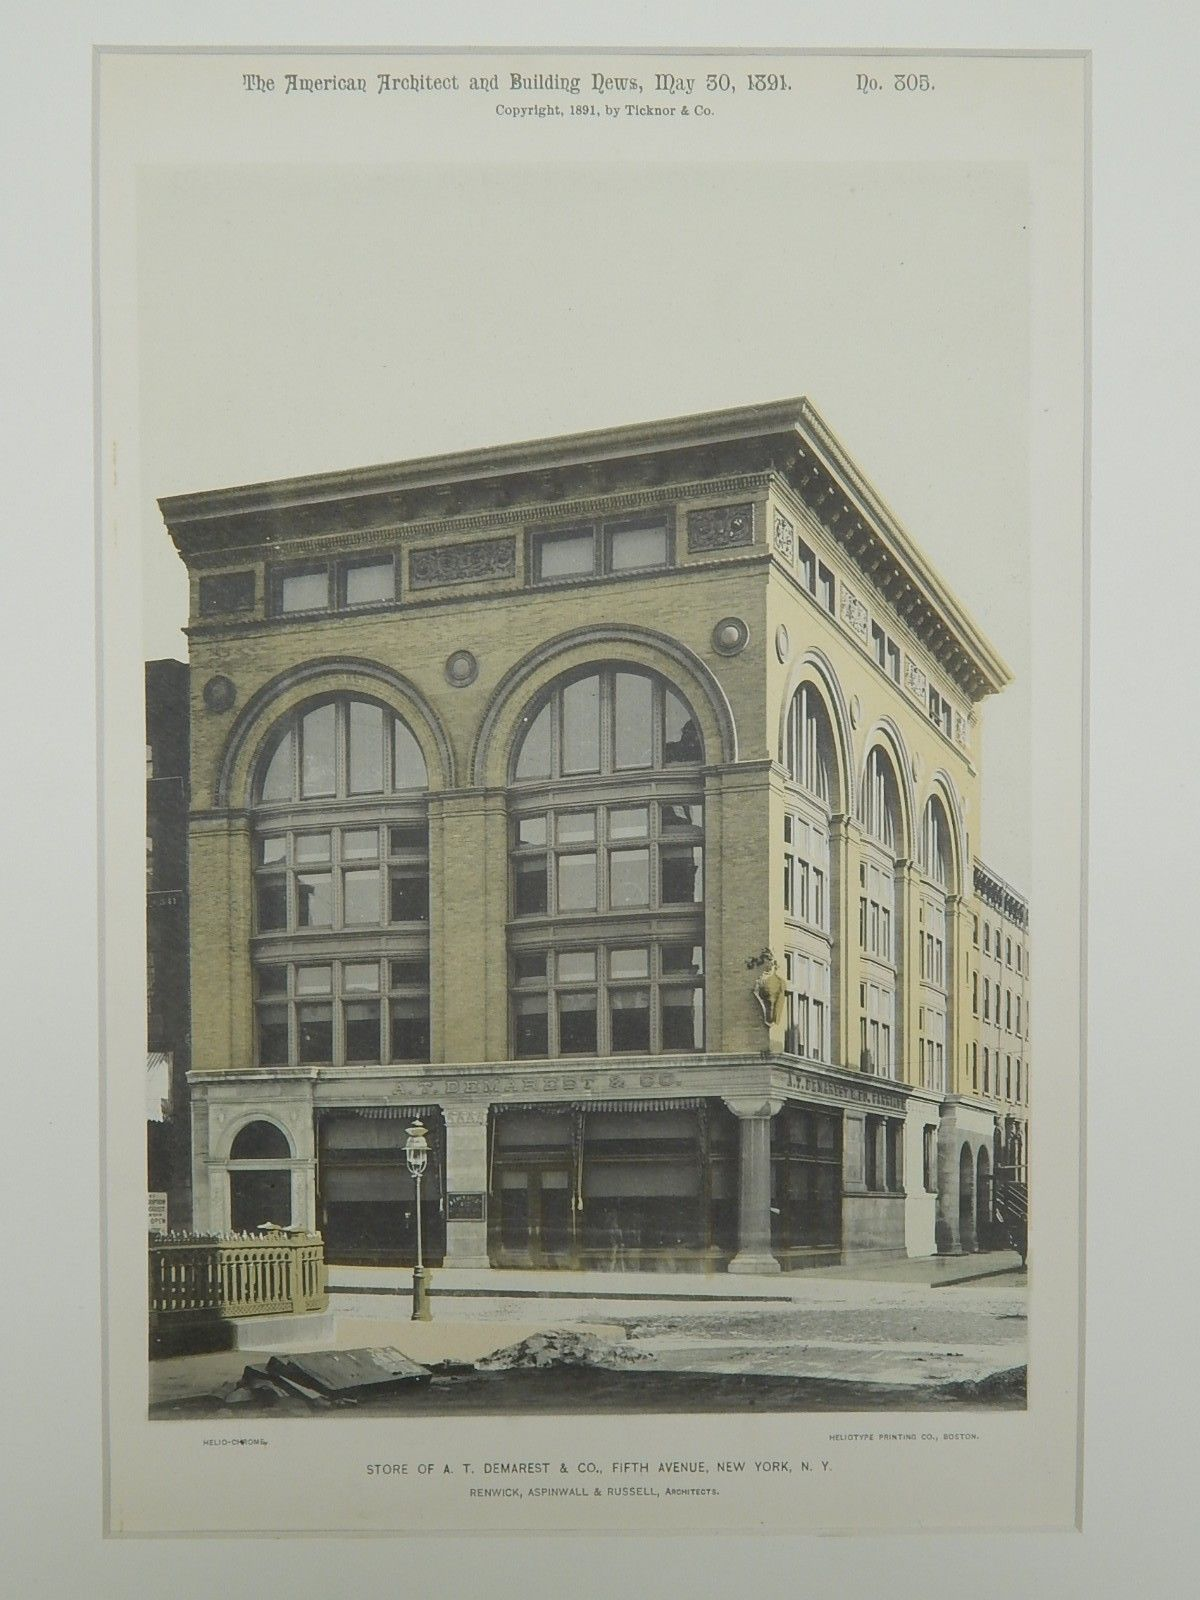 Store of A. T. Demarest & Co., Fifth Avenue, New York, NY, 1891, Gelatine Print. Renwick, Aspinwall & Russell.